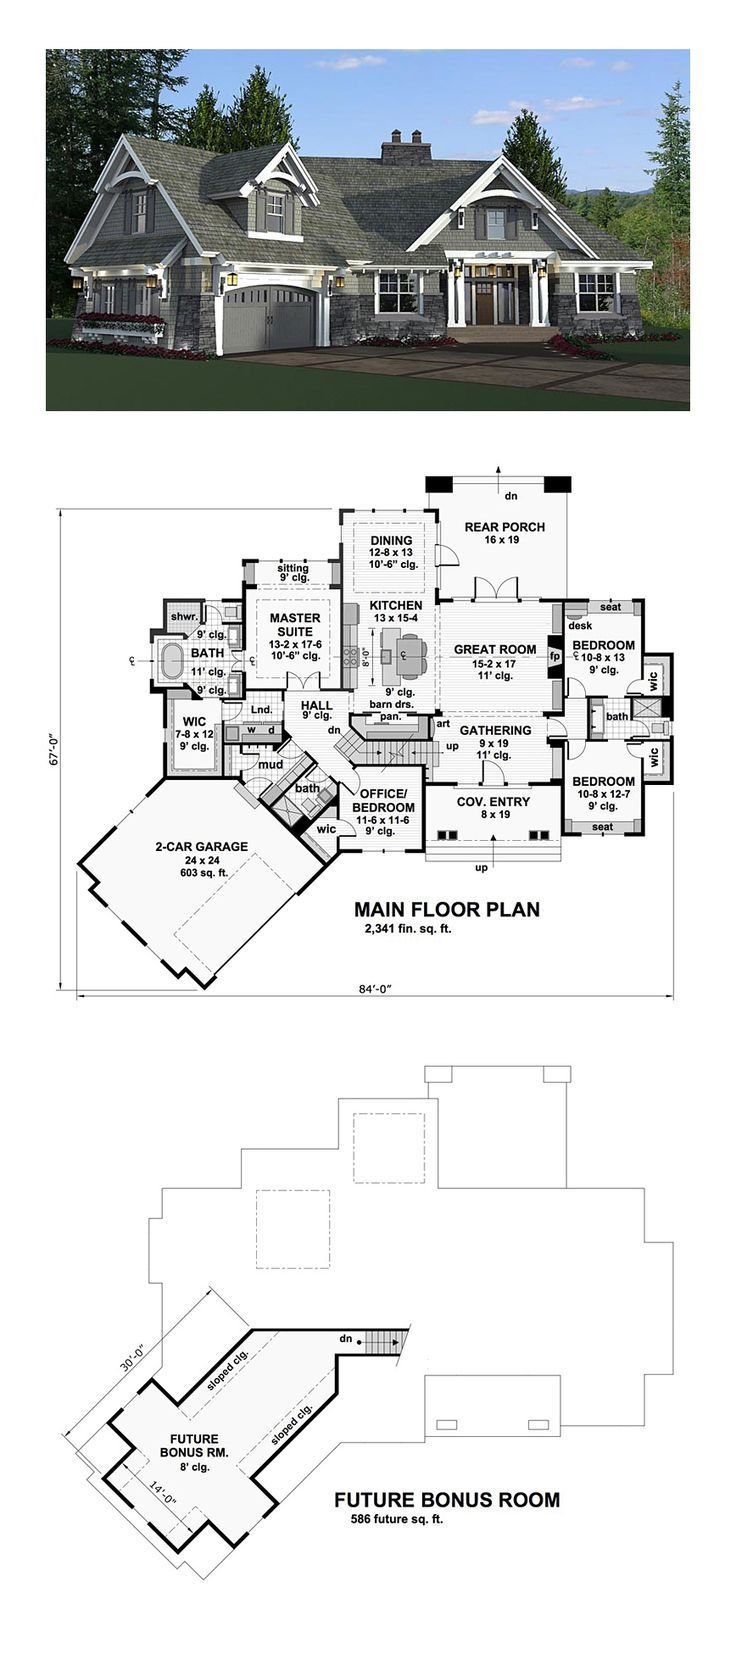 fda5885c3cc8381ab19638f6010429e3 Mother In Law Suite House Plans French Country With on house with center courtyard, house in valencia ca, house with basement garage, house floor plans, house plans with mother daughter suites, house plans ranch style home, house plans for disabled, house plans with 2 master suites, house plans with apartment suites, house plans with detached in law suite, house plans with kitchen in back of house, house plans under 600 feet, house exterior, house in law suite addition plans, house with detached garage breezeway, house above garage, homes with in-law suites, house plans for a family of 5, house plans with courtyard in middle,